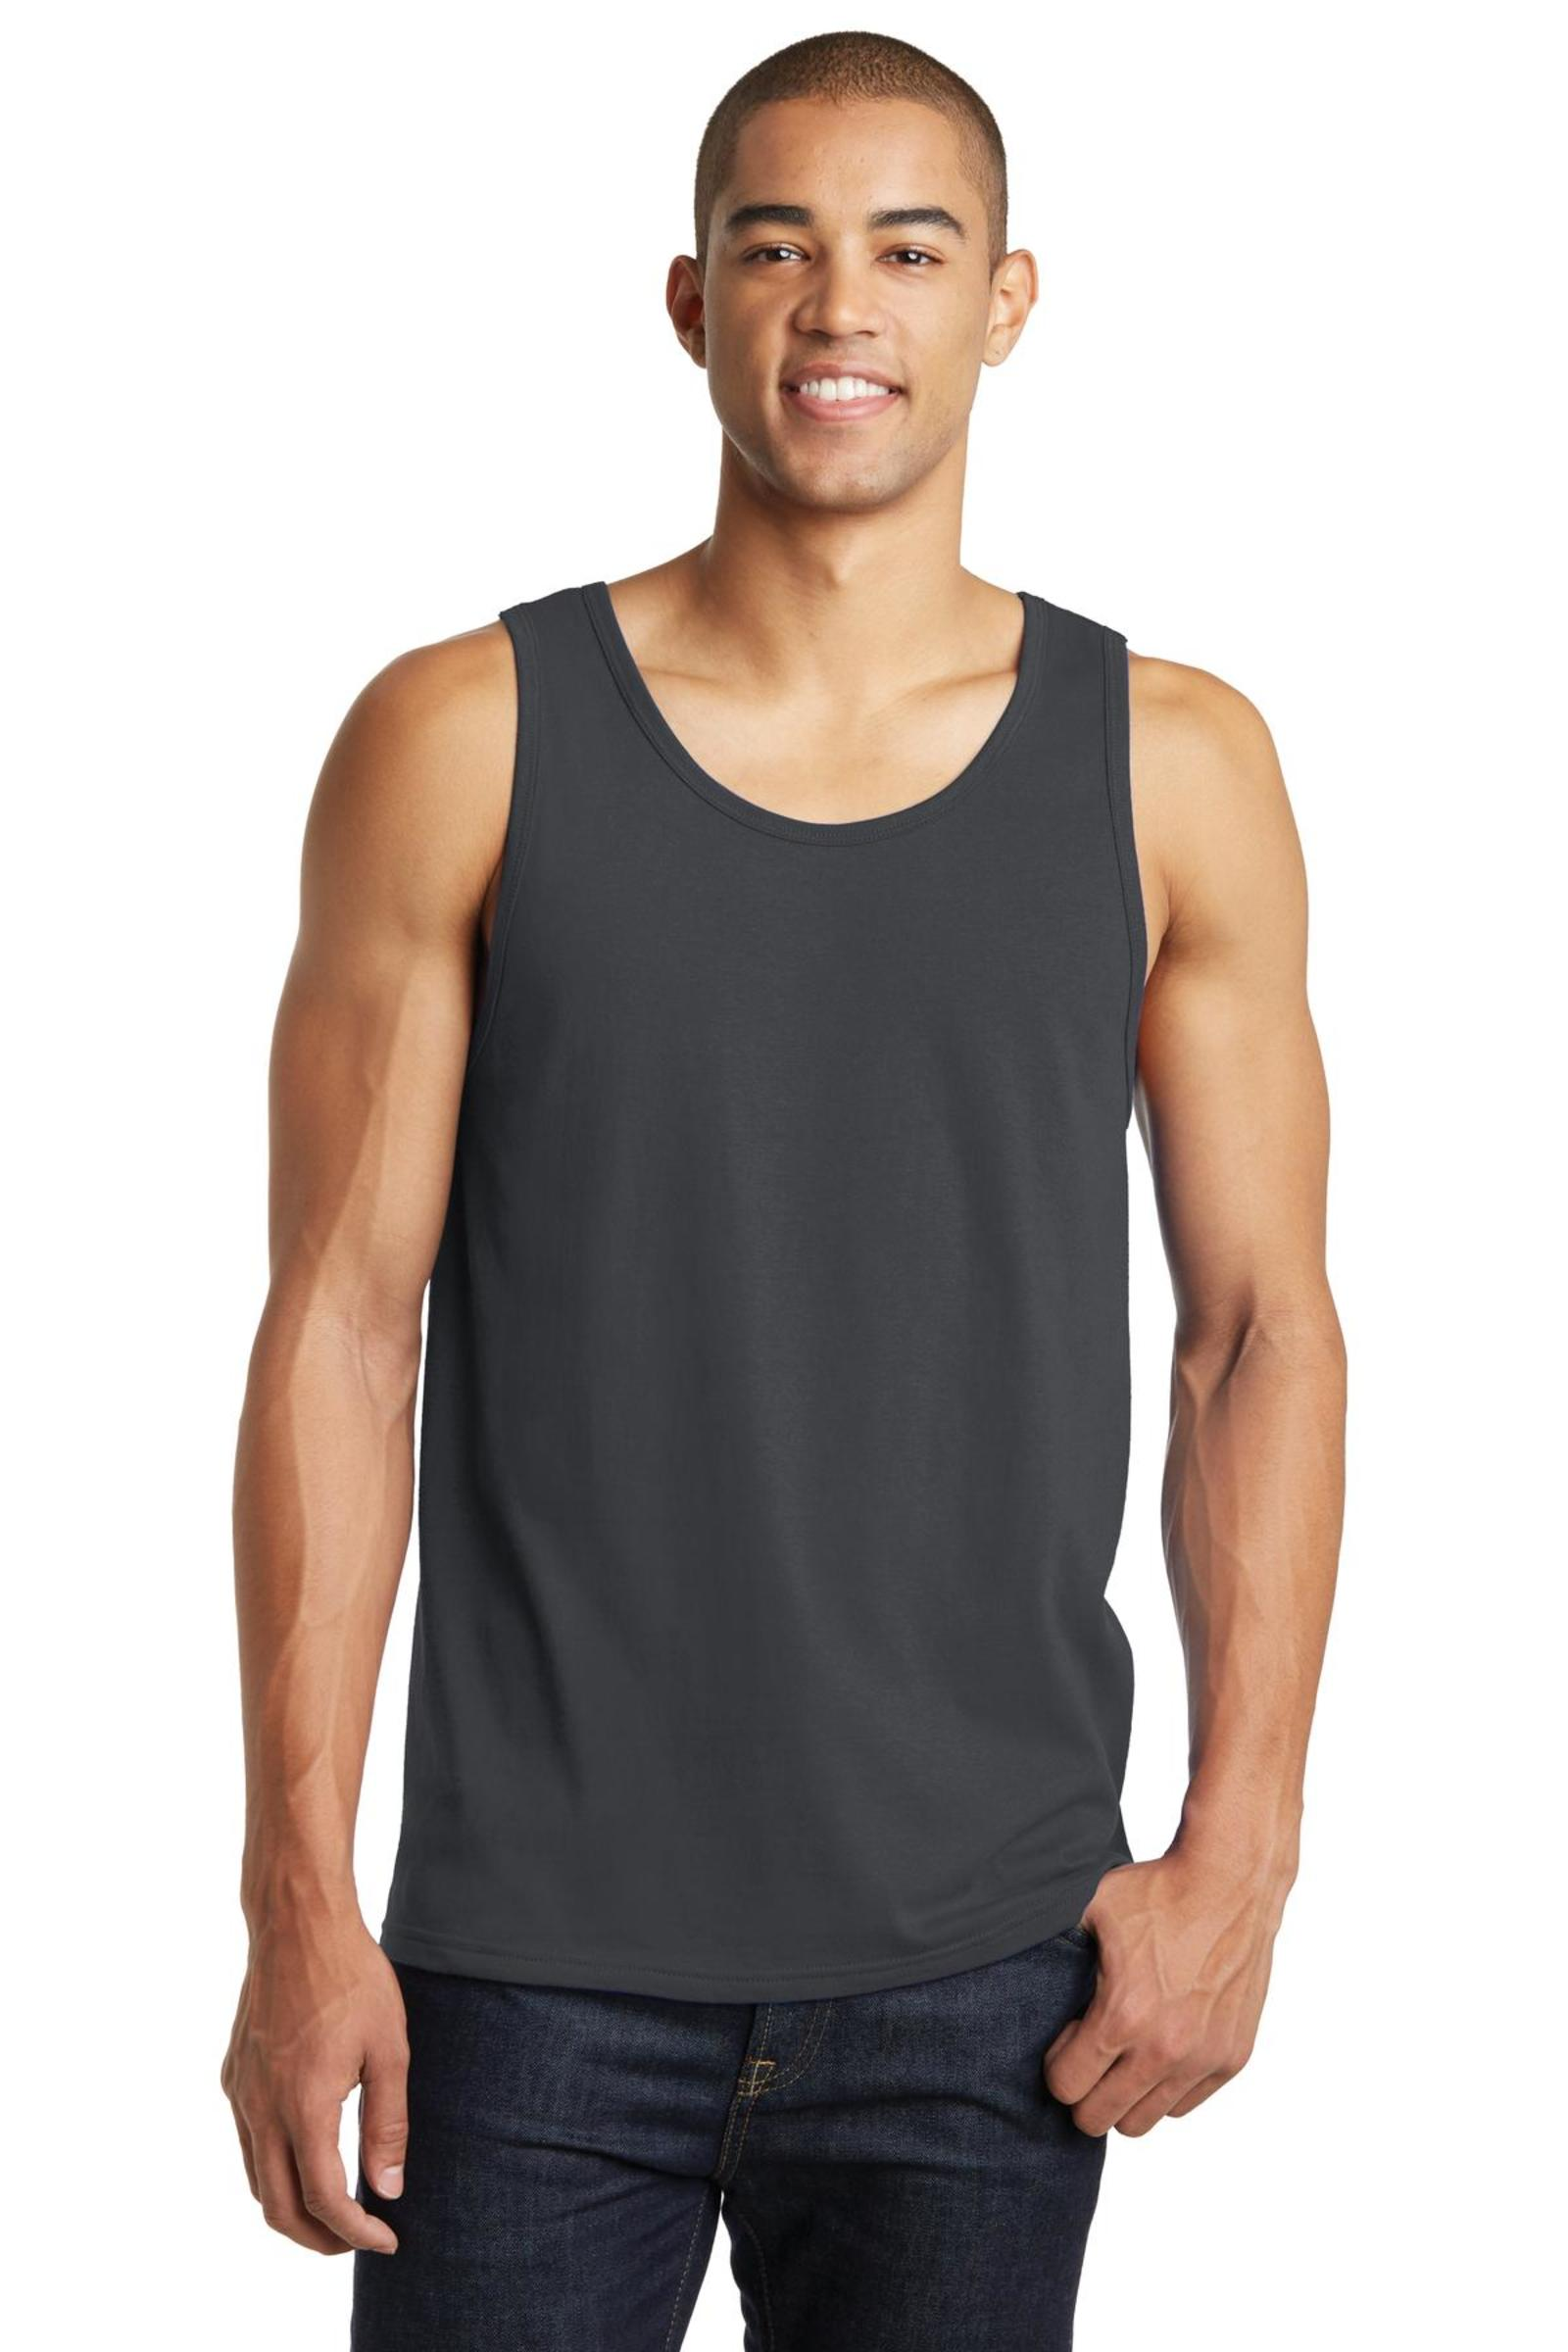 District Embroidered Men's The Concert Tank